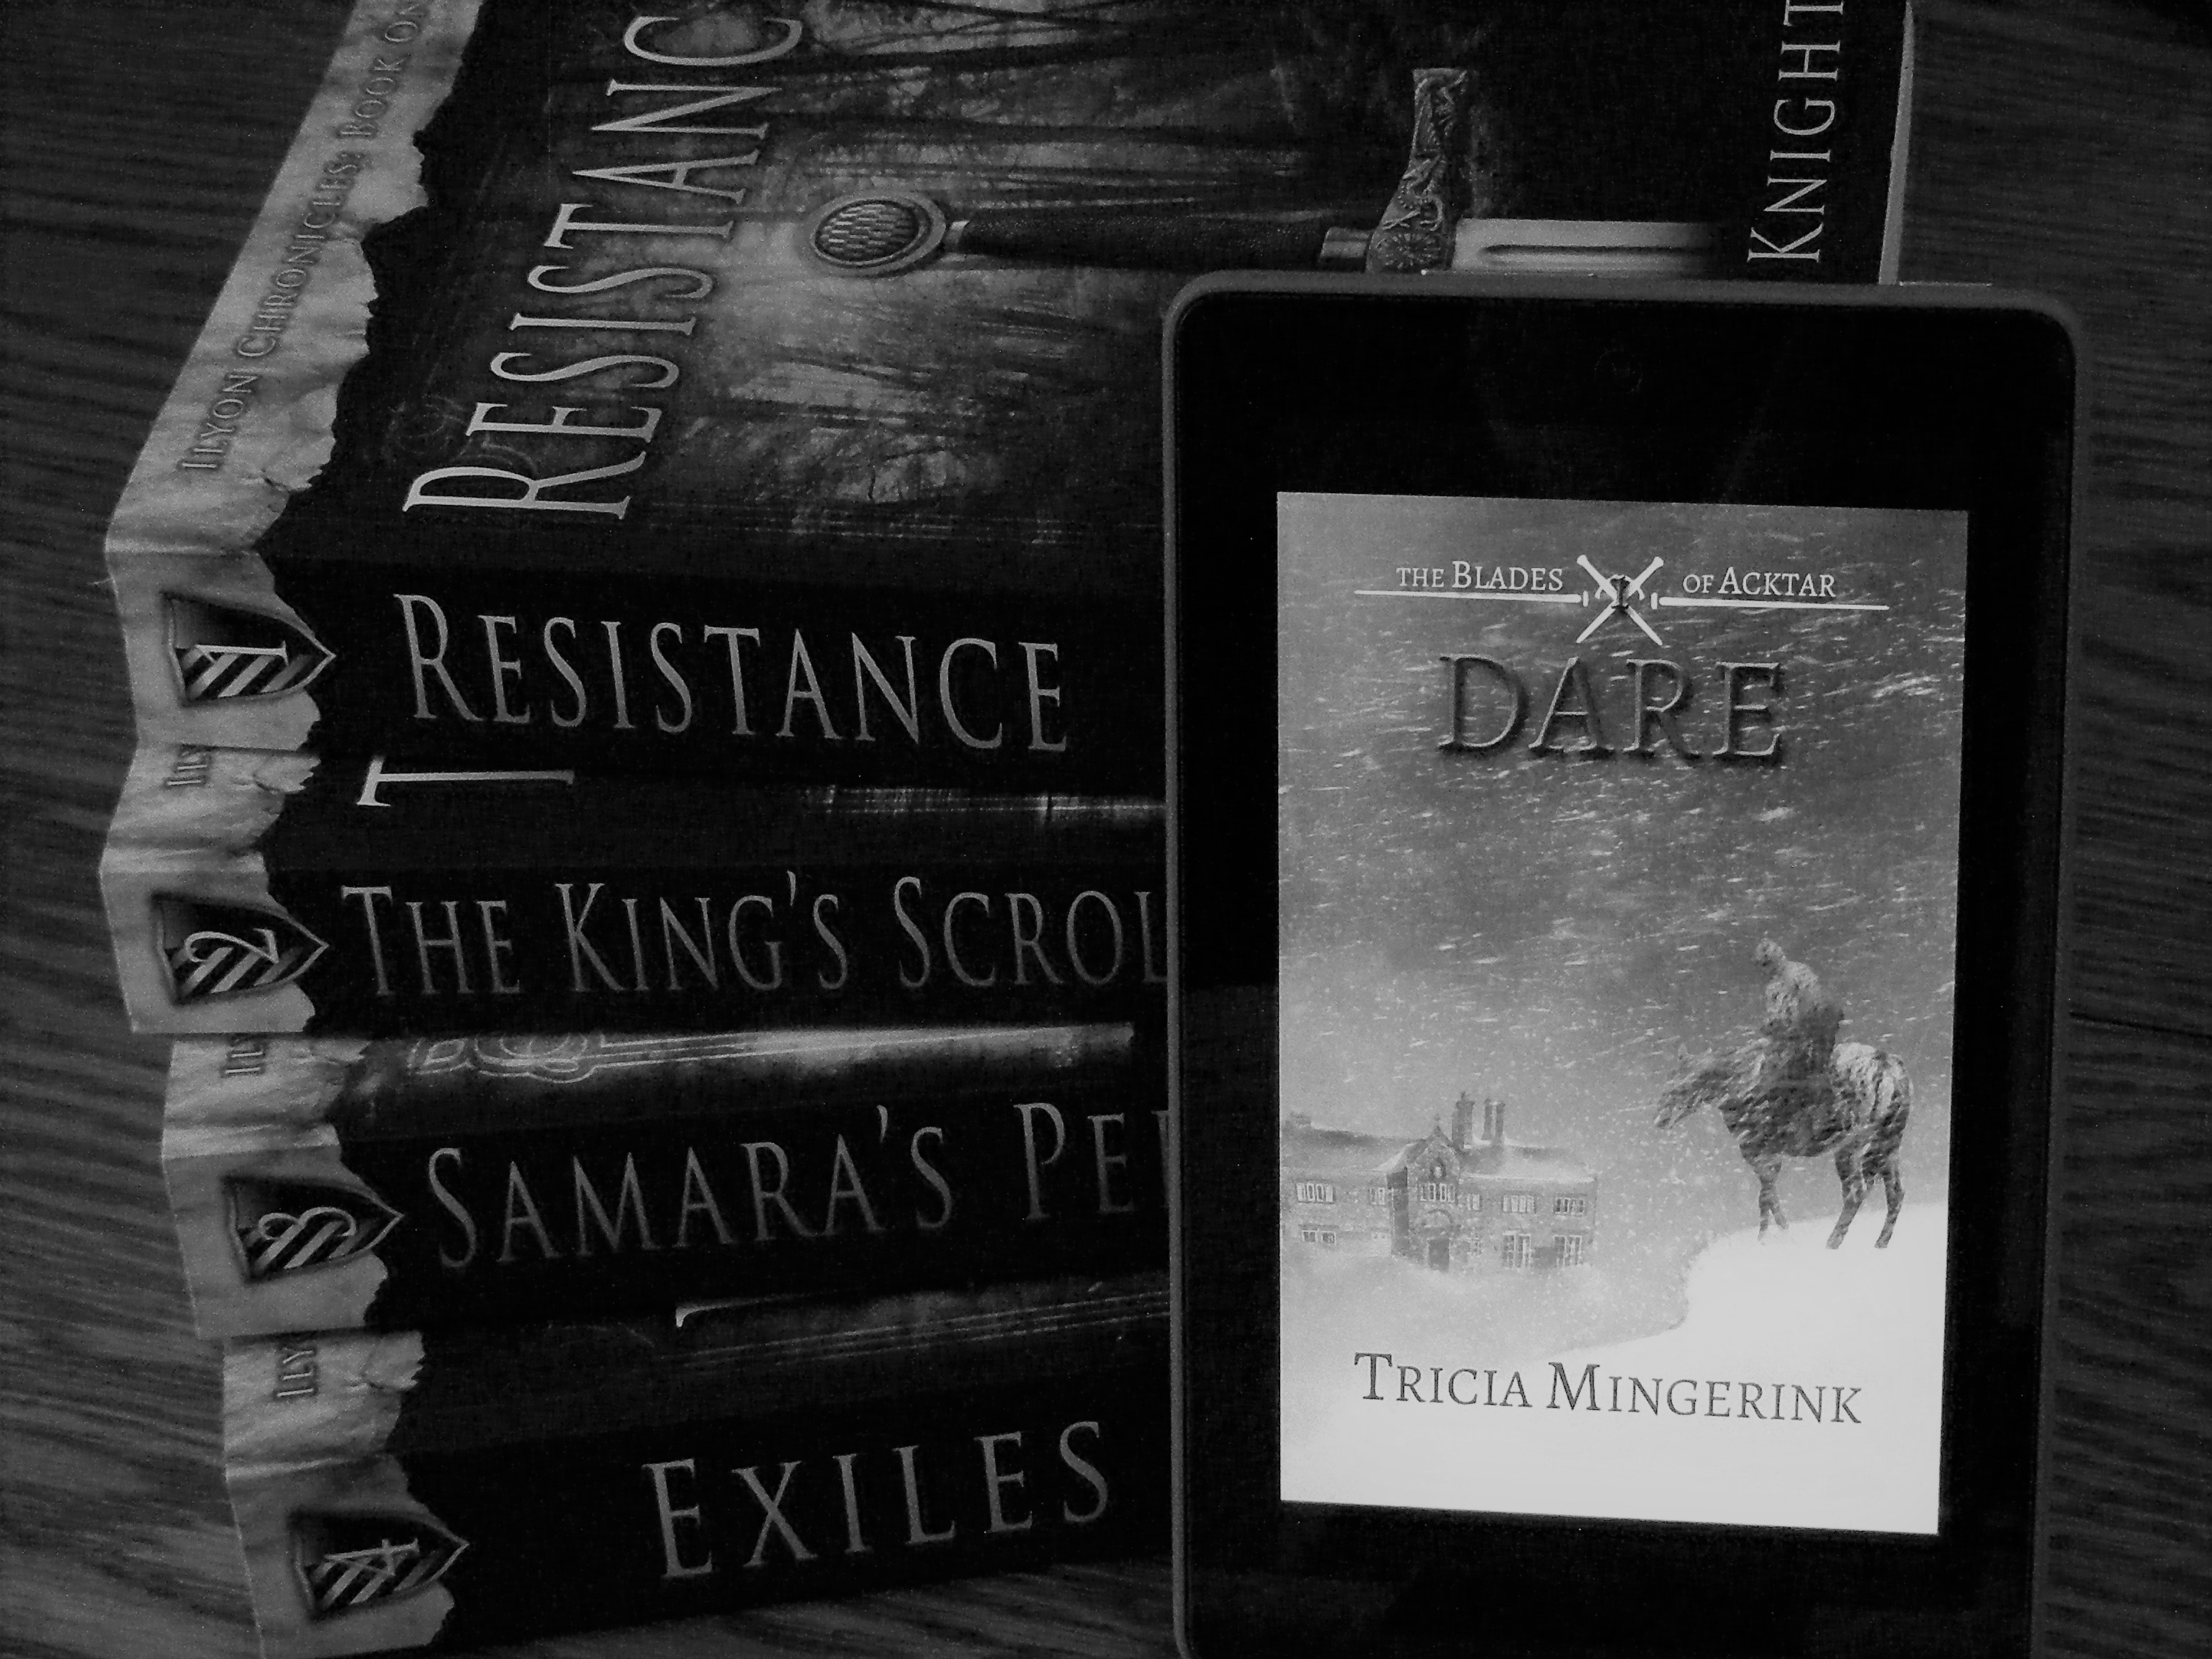 Dare by Tricia Mingerink is a Christian fantasy novel.